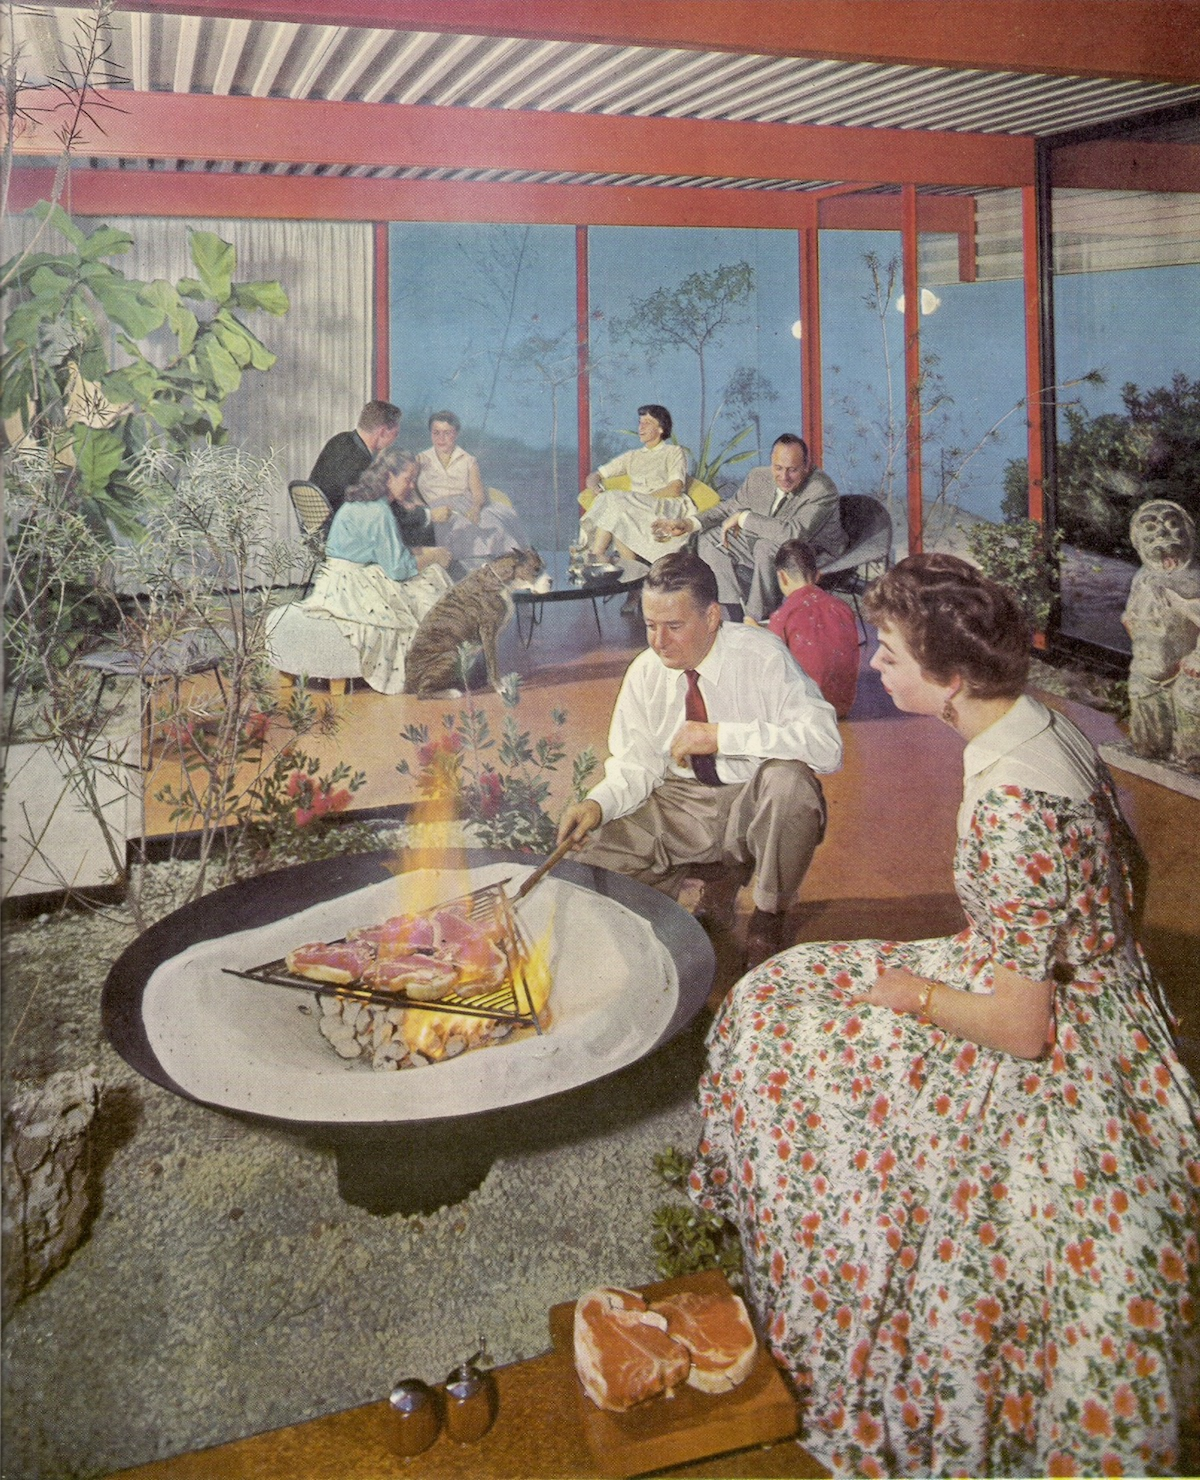 Architect Quincy Jones Barbeques Steak In The Living Room Of His Self-Designed House, 1958